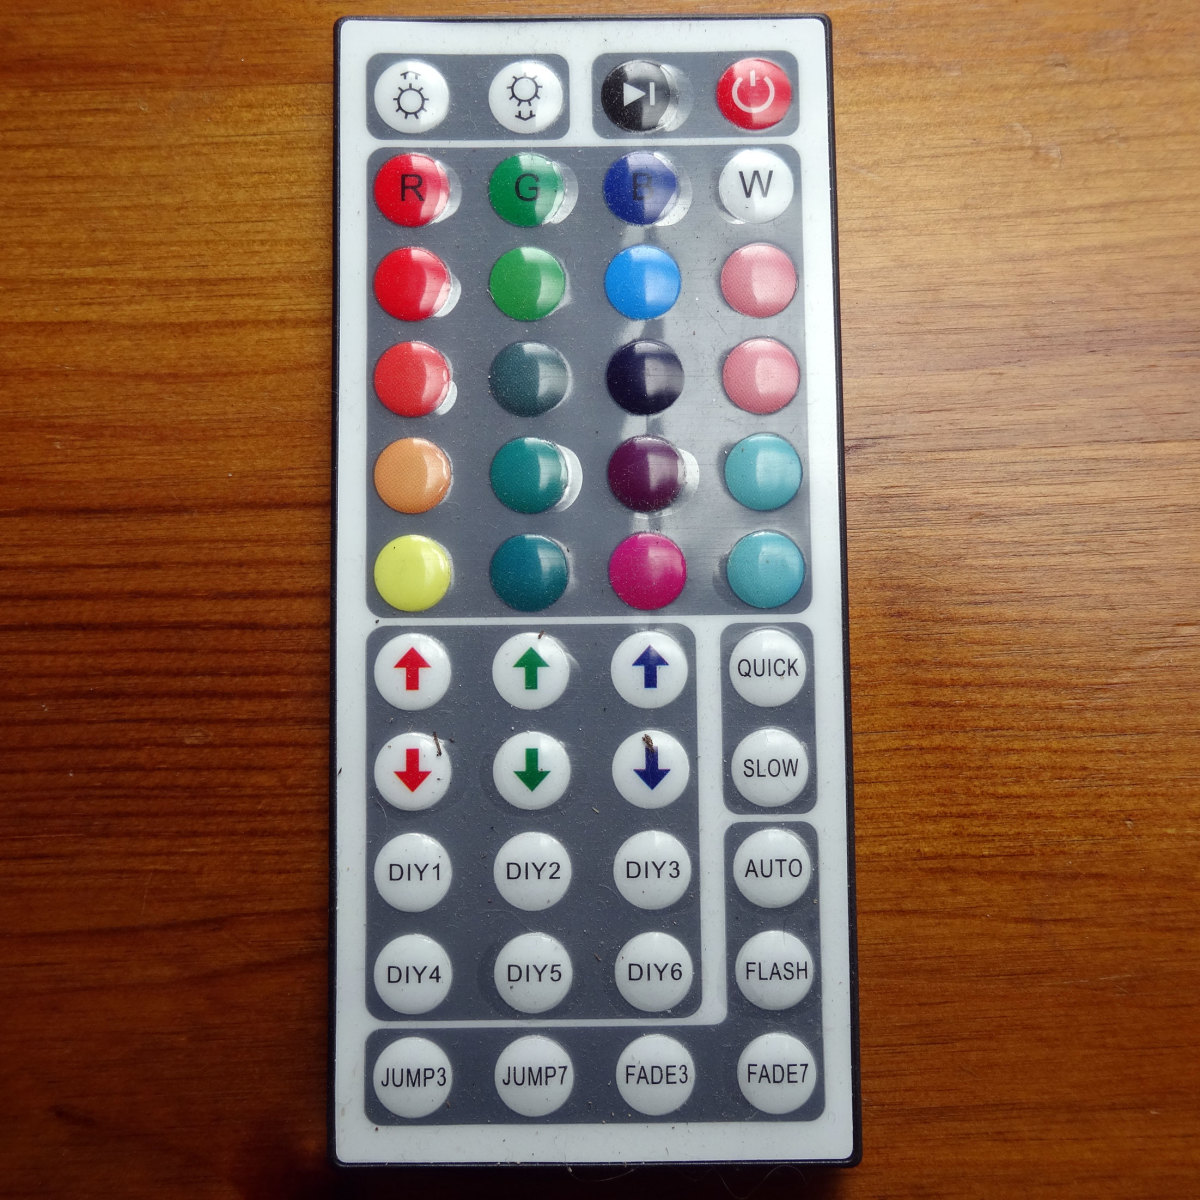 Remote control for LED lights